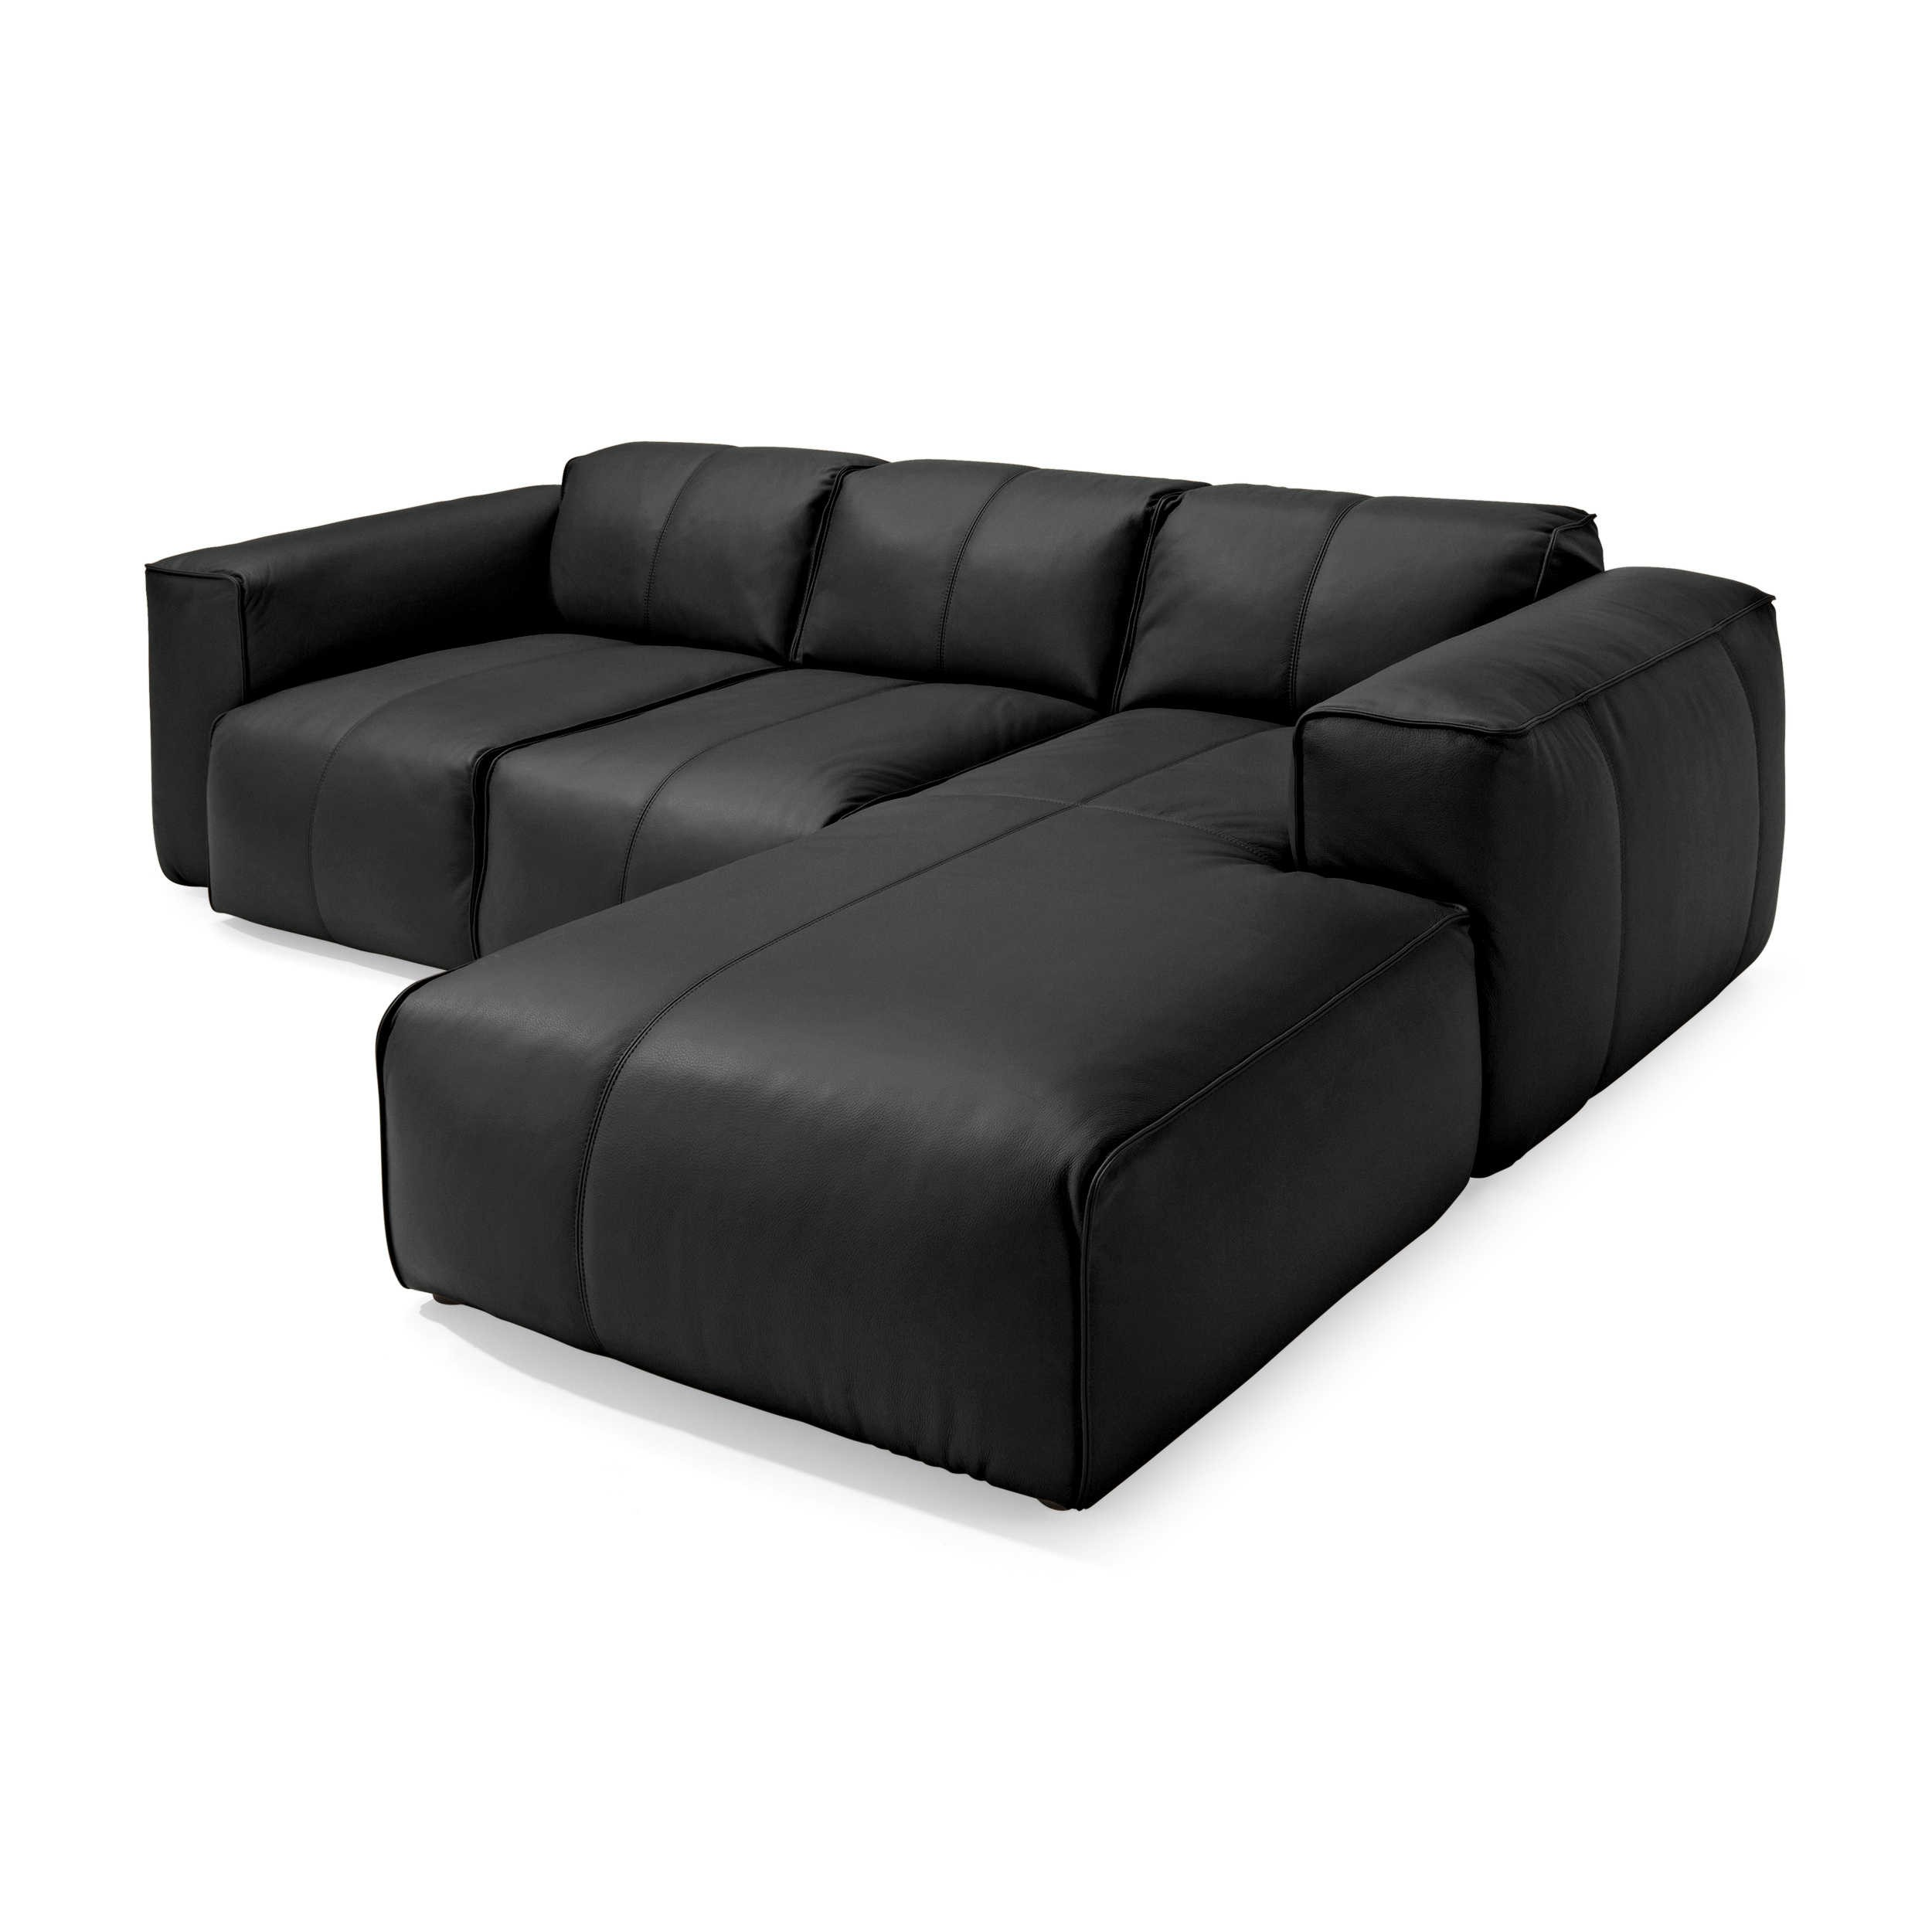 theca ecksofa fresno schwarz leder online kaufen bei woonio. Black Bedroom Furniture Sets. Home Design Ideas